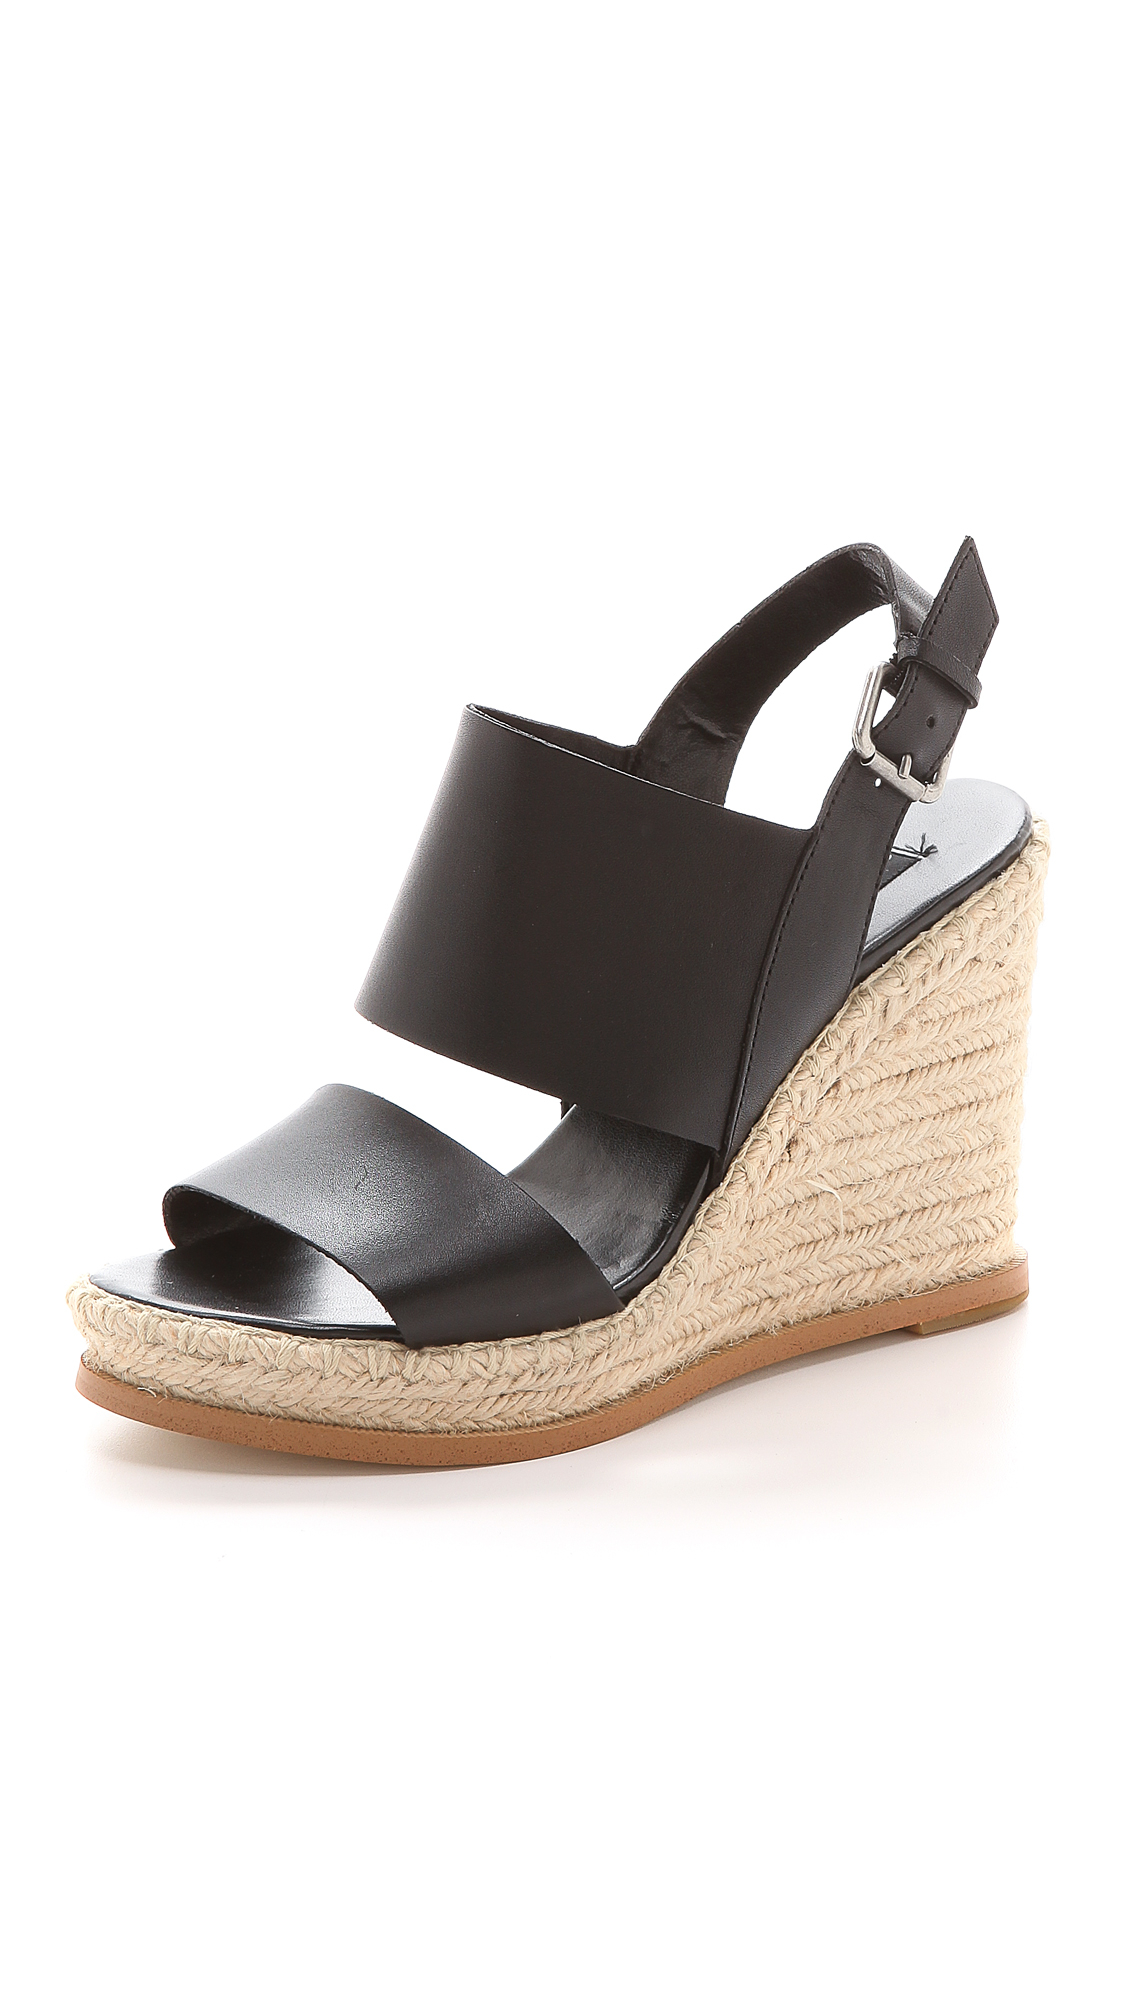 Steven By Steve Madden Stunner Espadrille Wedge Sandals